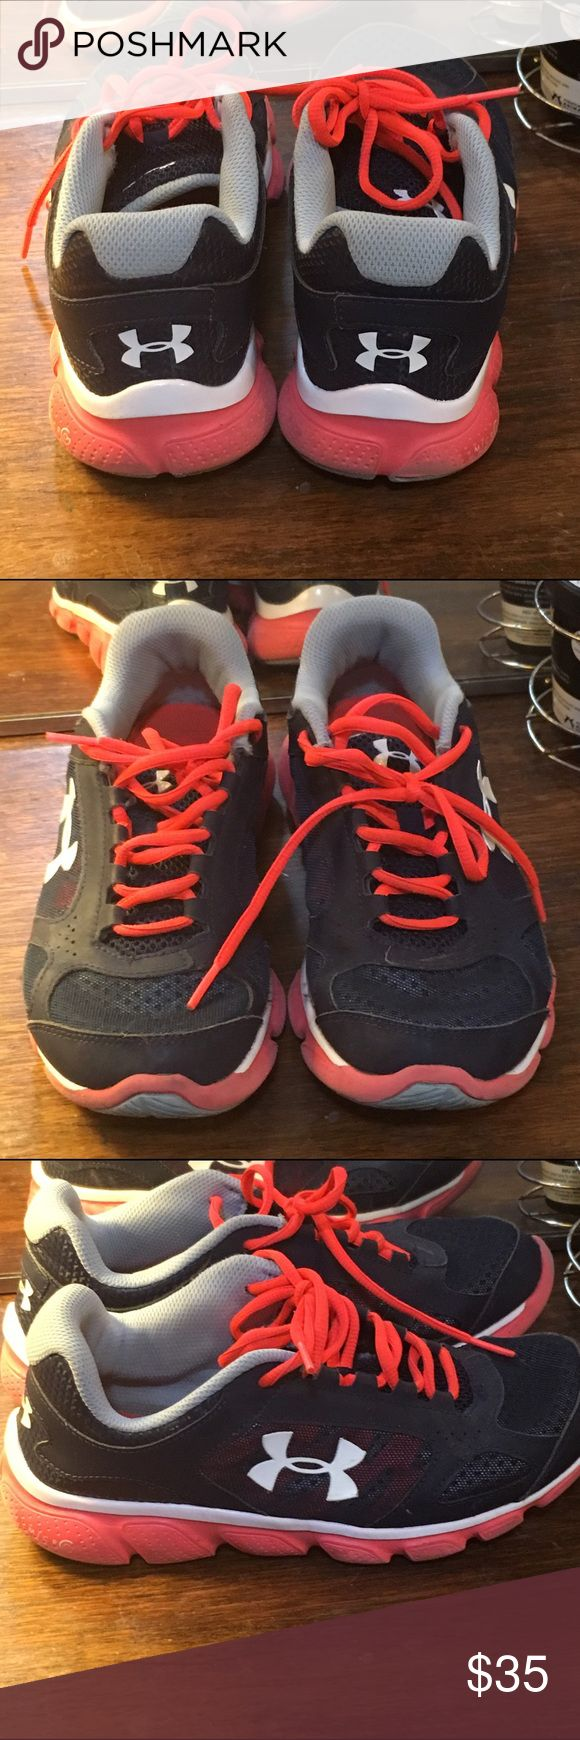 Under armour tennis shoes Barely worn great shape Under Armour Shoes Sneakers